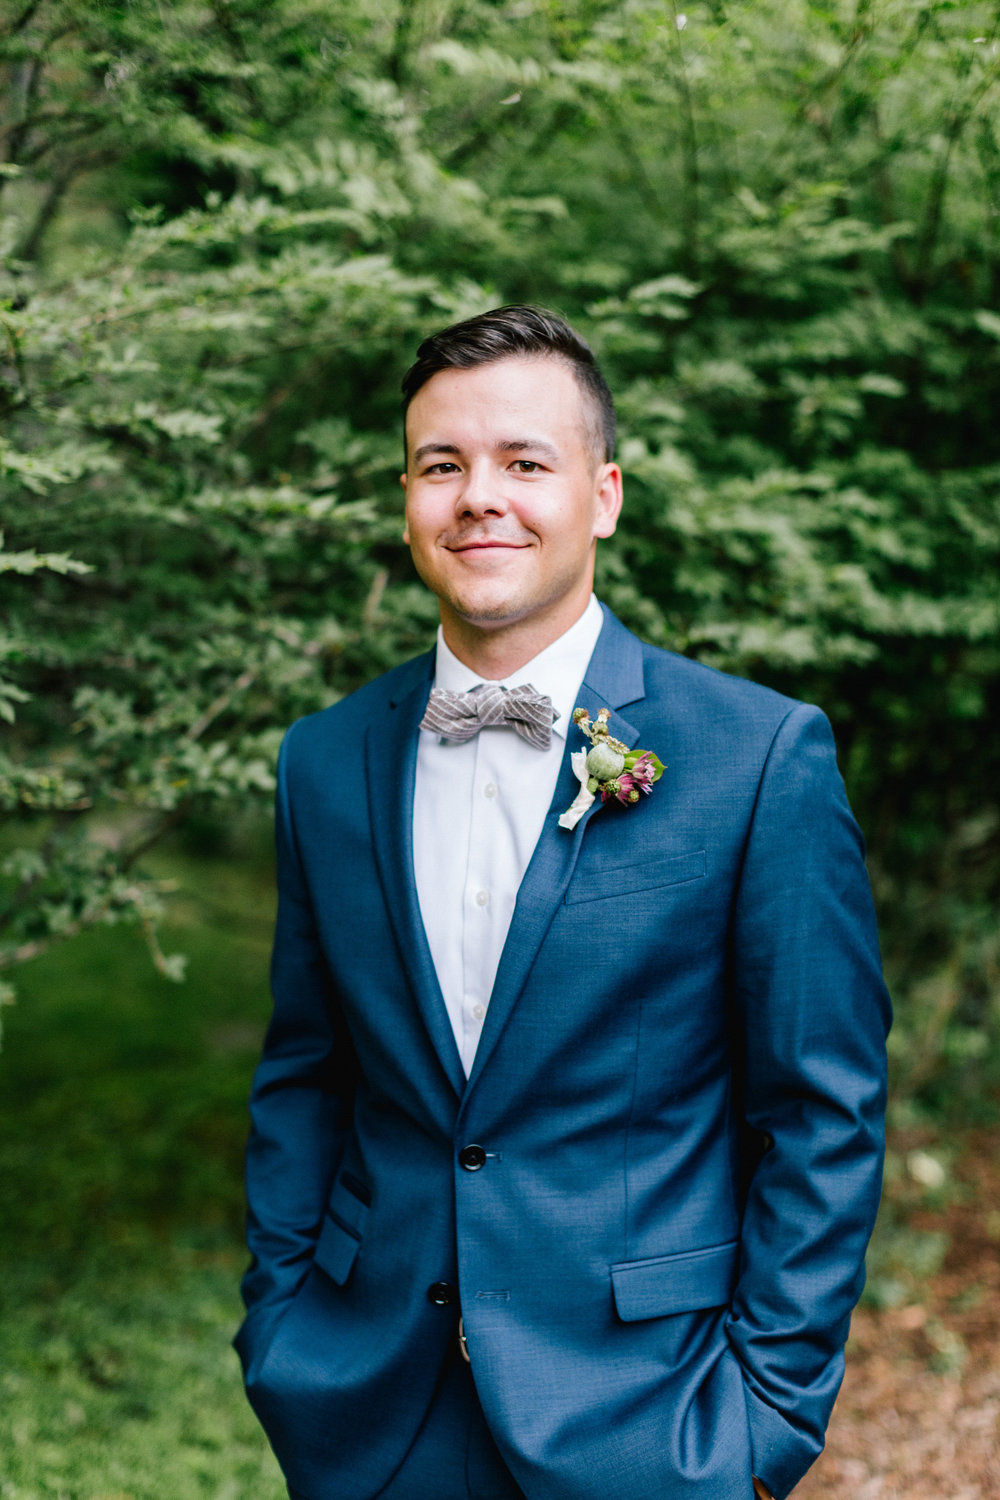 Allison_Hopperstad_Photography_Acowsay_Wedding_Groom.JPG